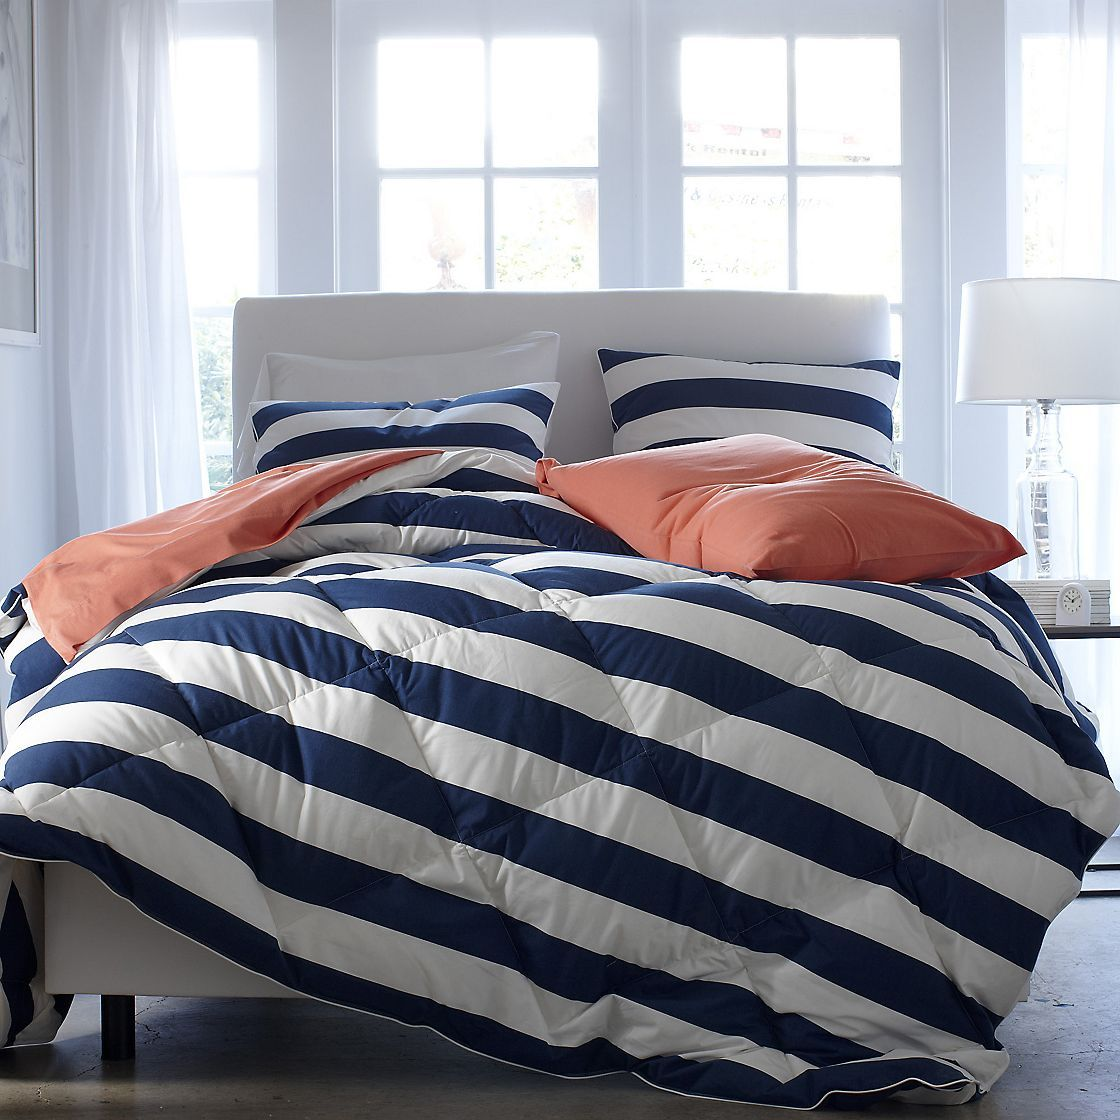 erkkeri rectangle large hotel twin covers light stripes double size solid sets textured s and off cover design info navy of queen stripe sale white gray red striped grey bed duvet duvets bedding set stars for satin pompom full black teal flannel sheets pattern linen blue cotton pillow king